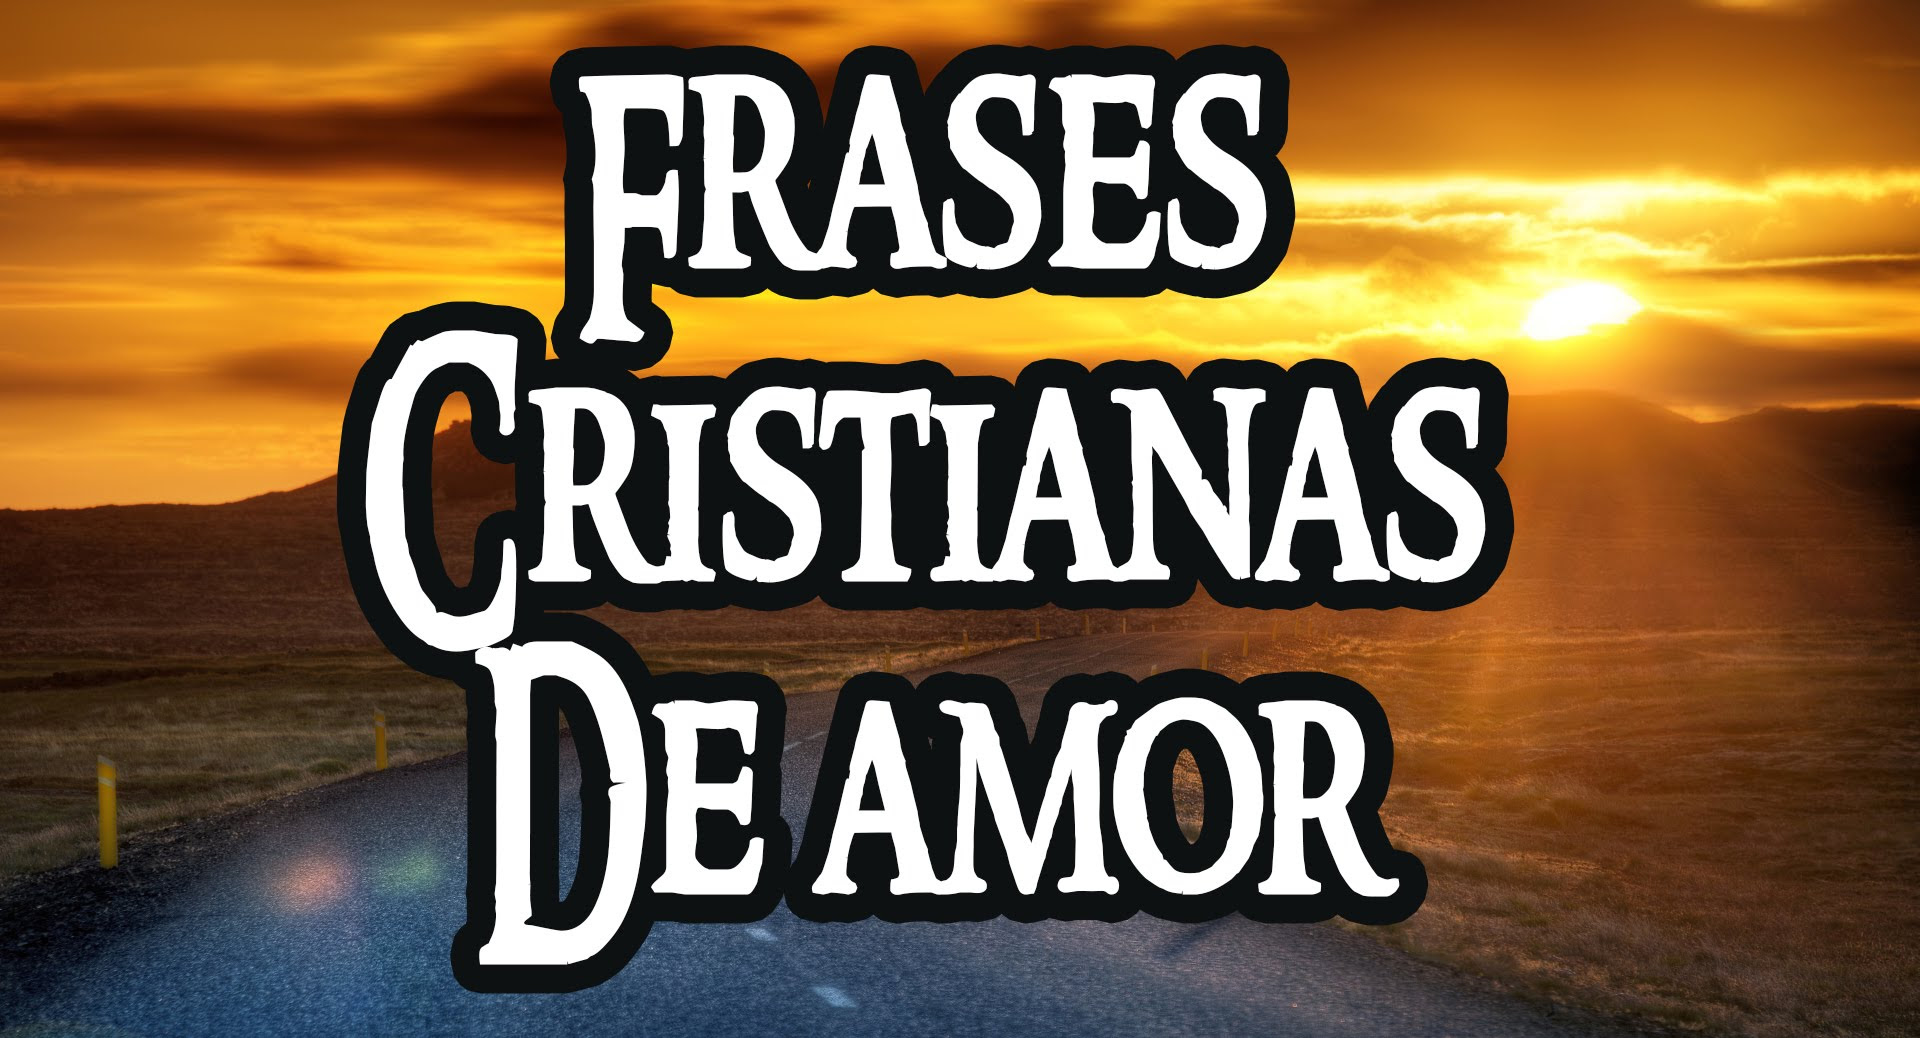 Sana Doctrina Videos Cristianos Frases Cristianas Sana Doctrina